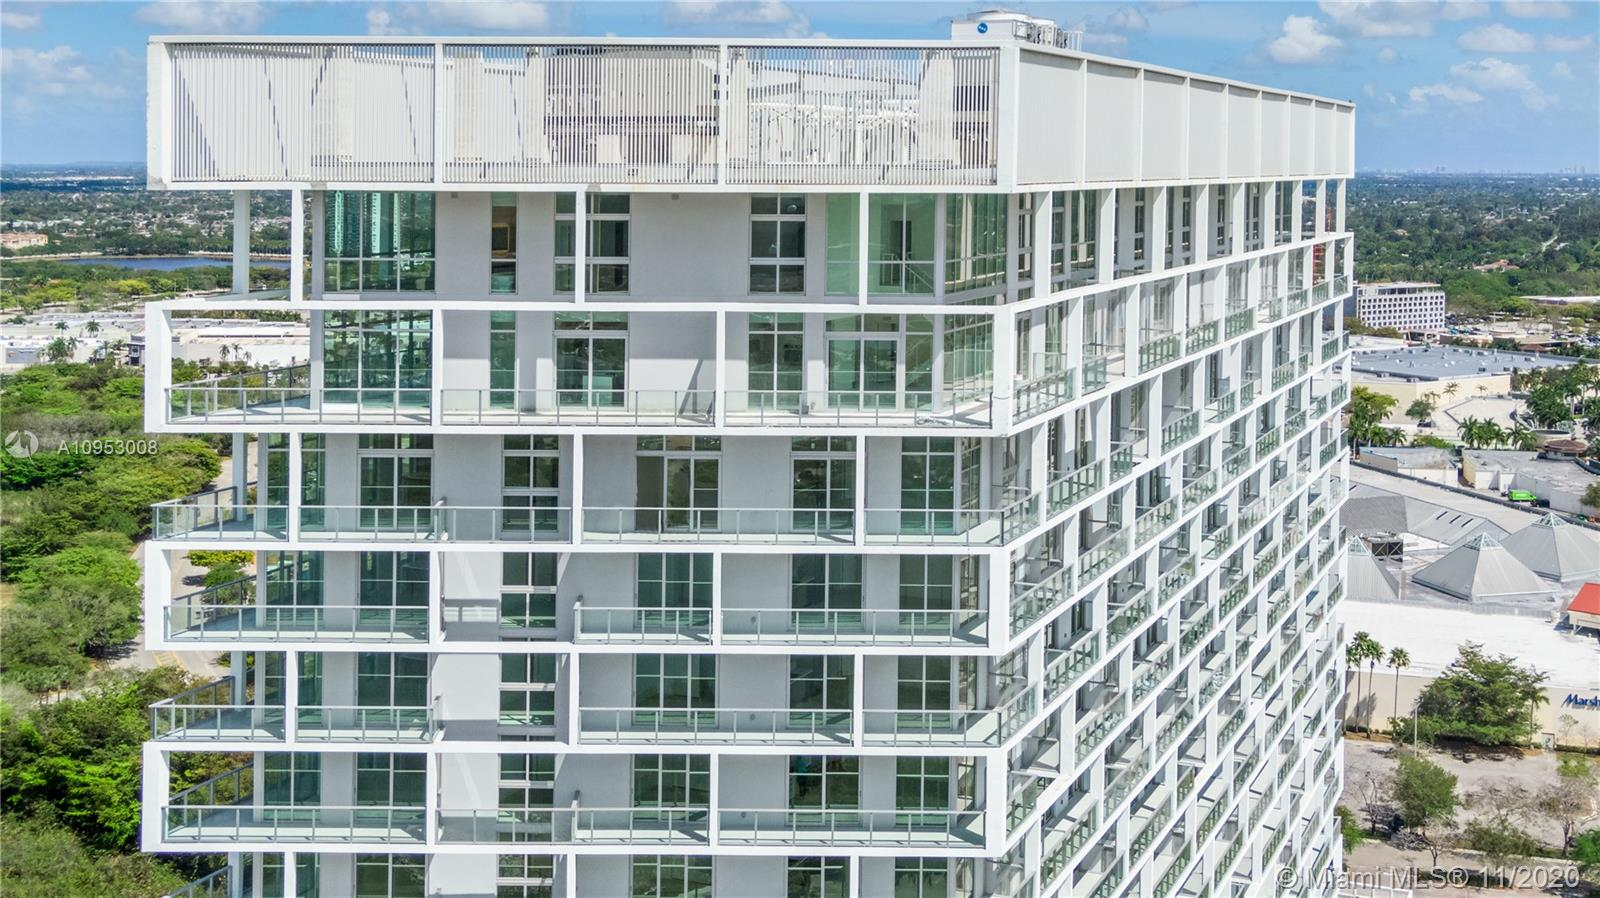 Imagen yourself living in an upscale tower masterfully planned with amazing views, a entire floor entertainment with infinity pool and outdoor jacuzzi, fully-equipped techno-gym fitness center, indoor and outdoor massage therapy rooms and indoor steam room and sauna, two full sizes tennis courts, outdoor area for yoga classes and  outdoor cross-training facilities, 24-hour concierge and security service and more. This beautiful 1 dedroom 1 bathroom , 3rd floor facing North-west with minimalistic finishes. One Metropica feature interiors by YOO and architecture by Chad Oppenheim.